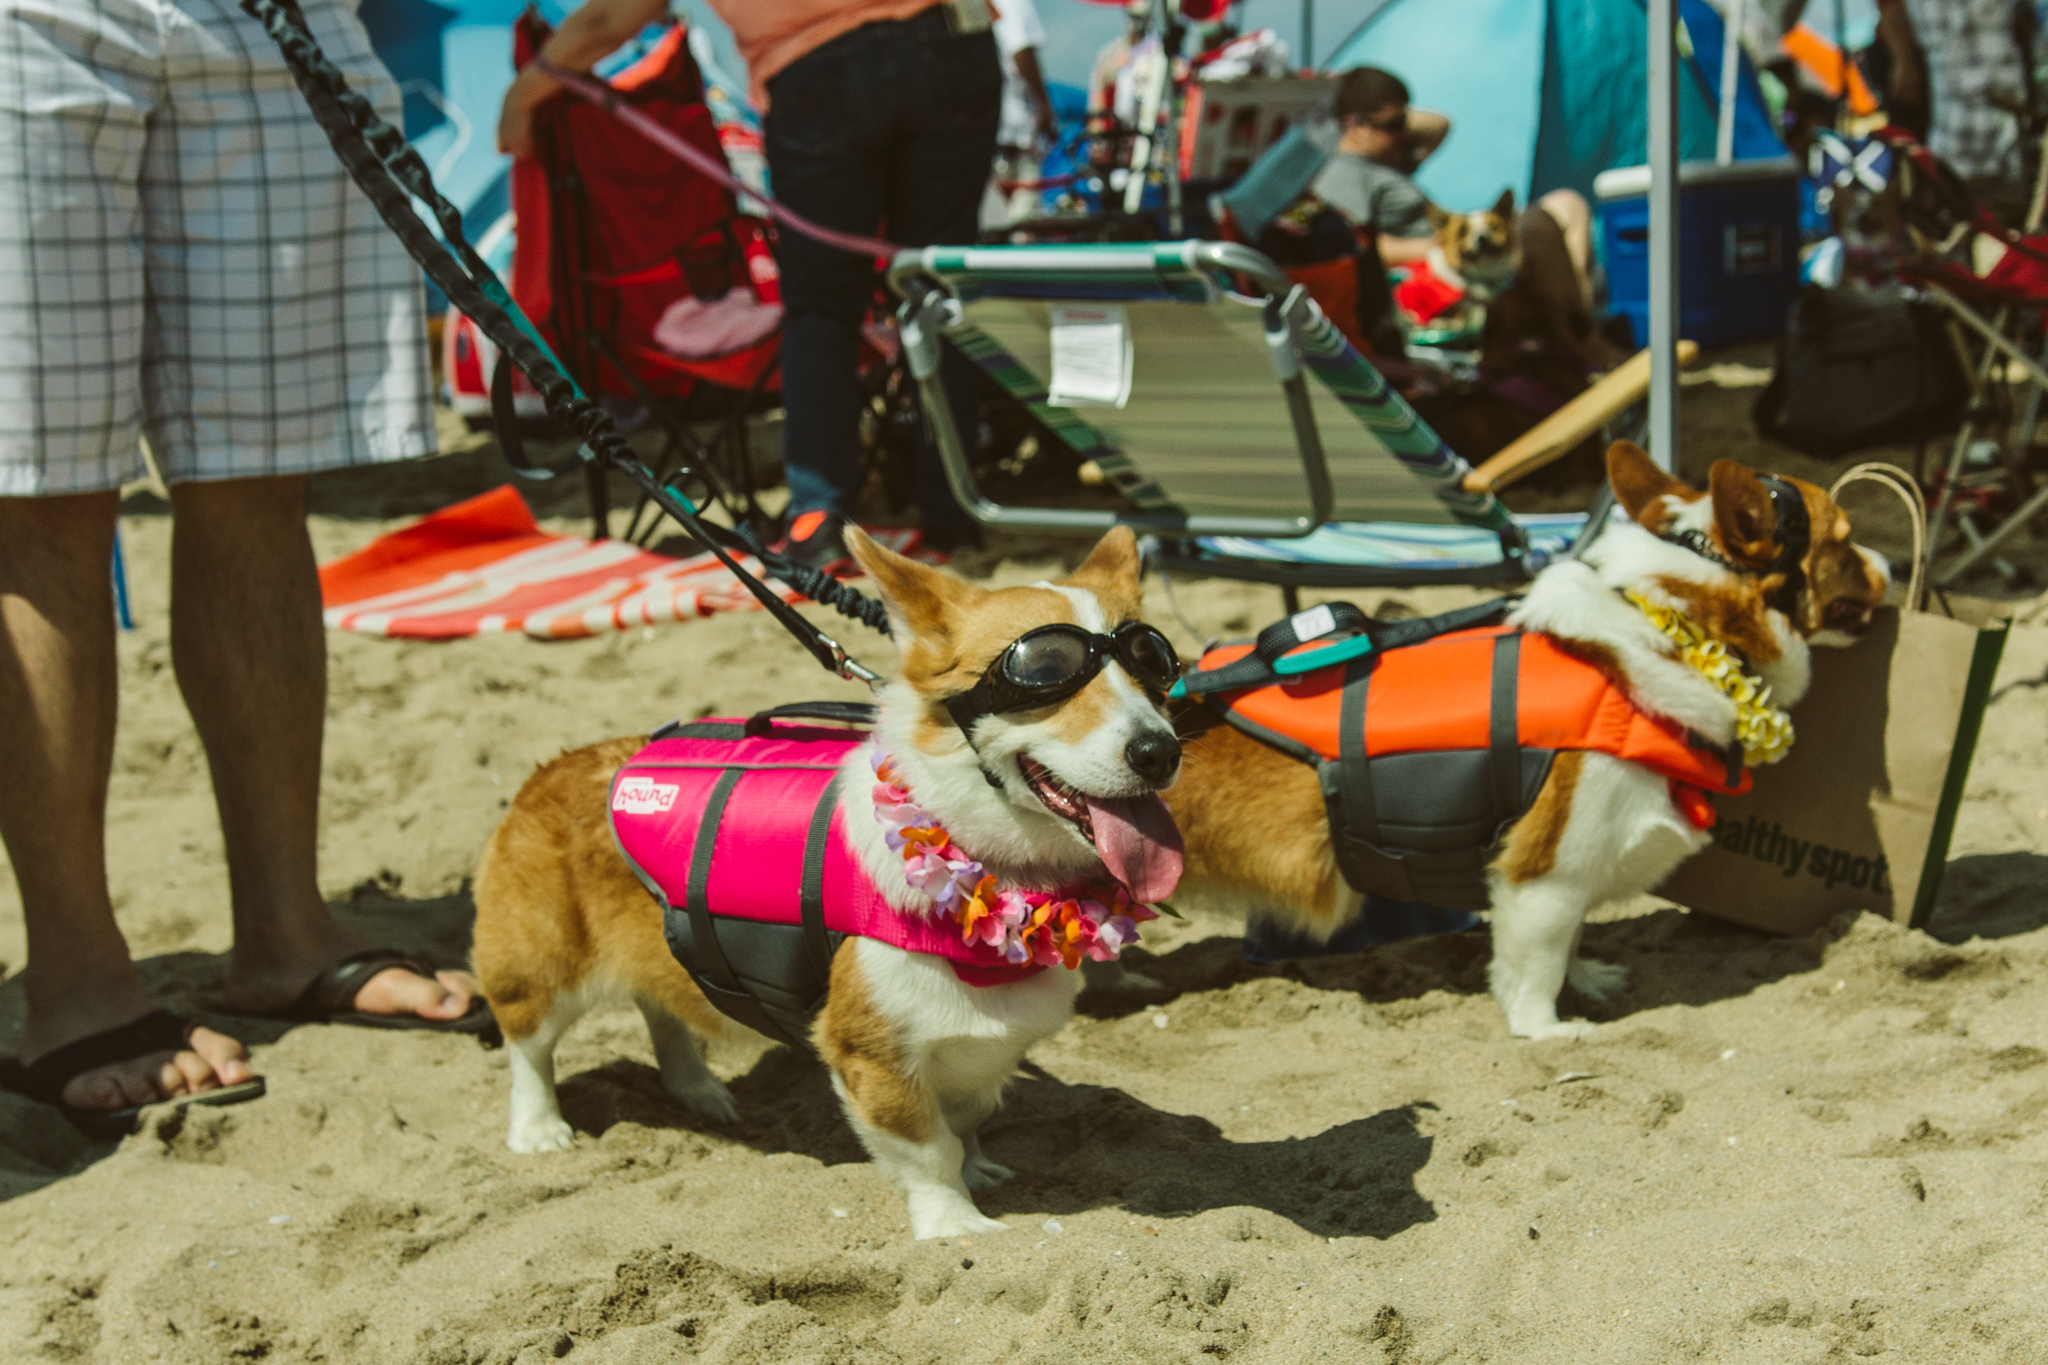 The dogs were out at Huntington Beach for So Cal Corgi Beach Day